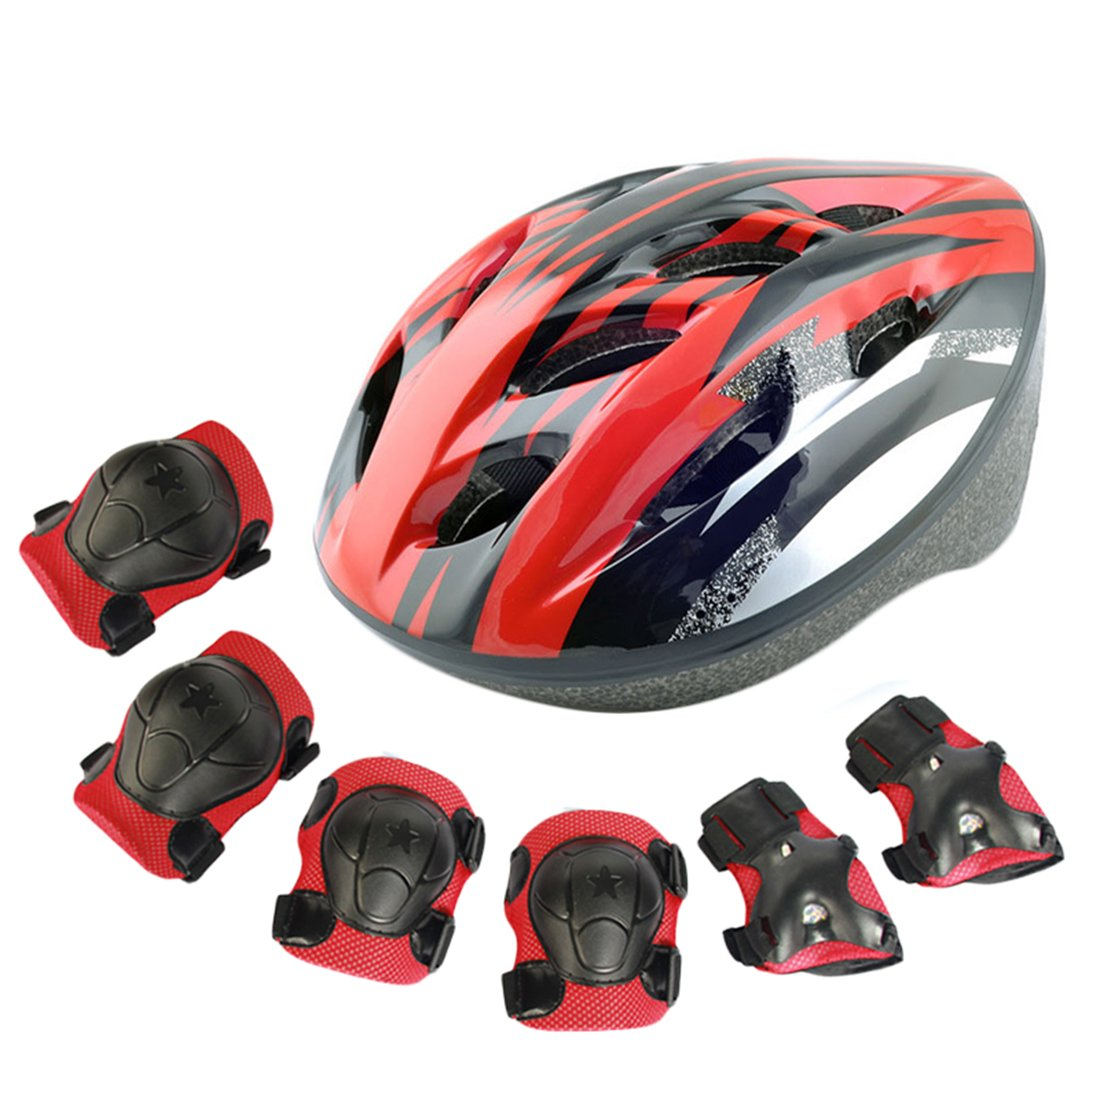 RuiyiF 7Pcs Sports Safety Protective Gear for Kids,Elbow Pads Knee Pads with Wrist Guard and Helmet for Scooter Skateboarding Skating Cycling Biking